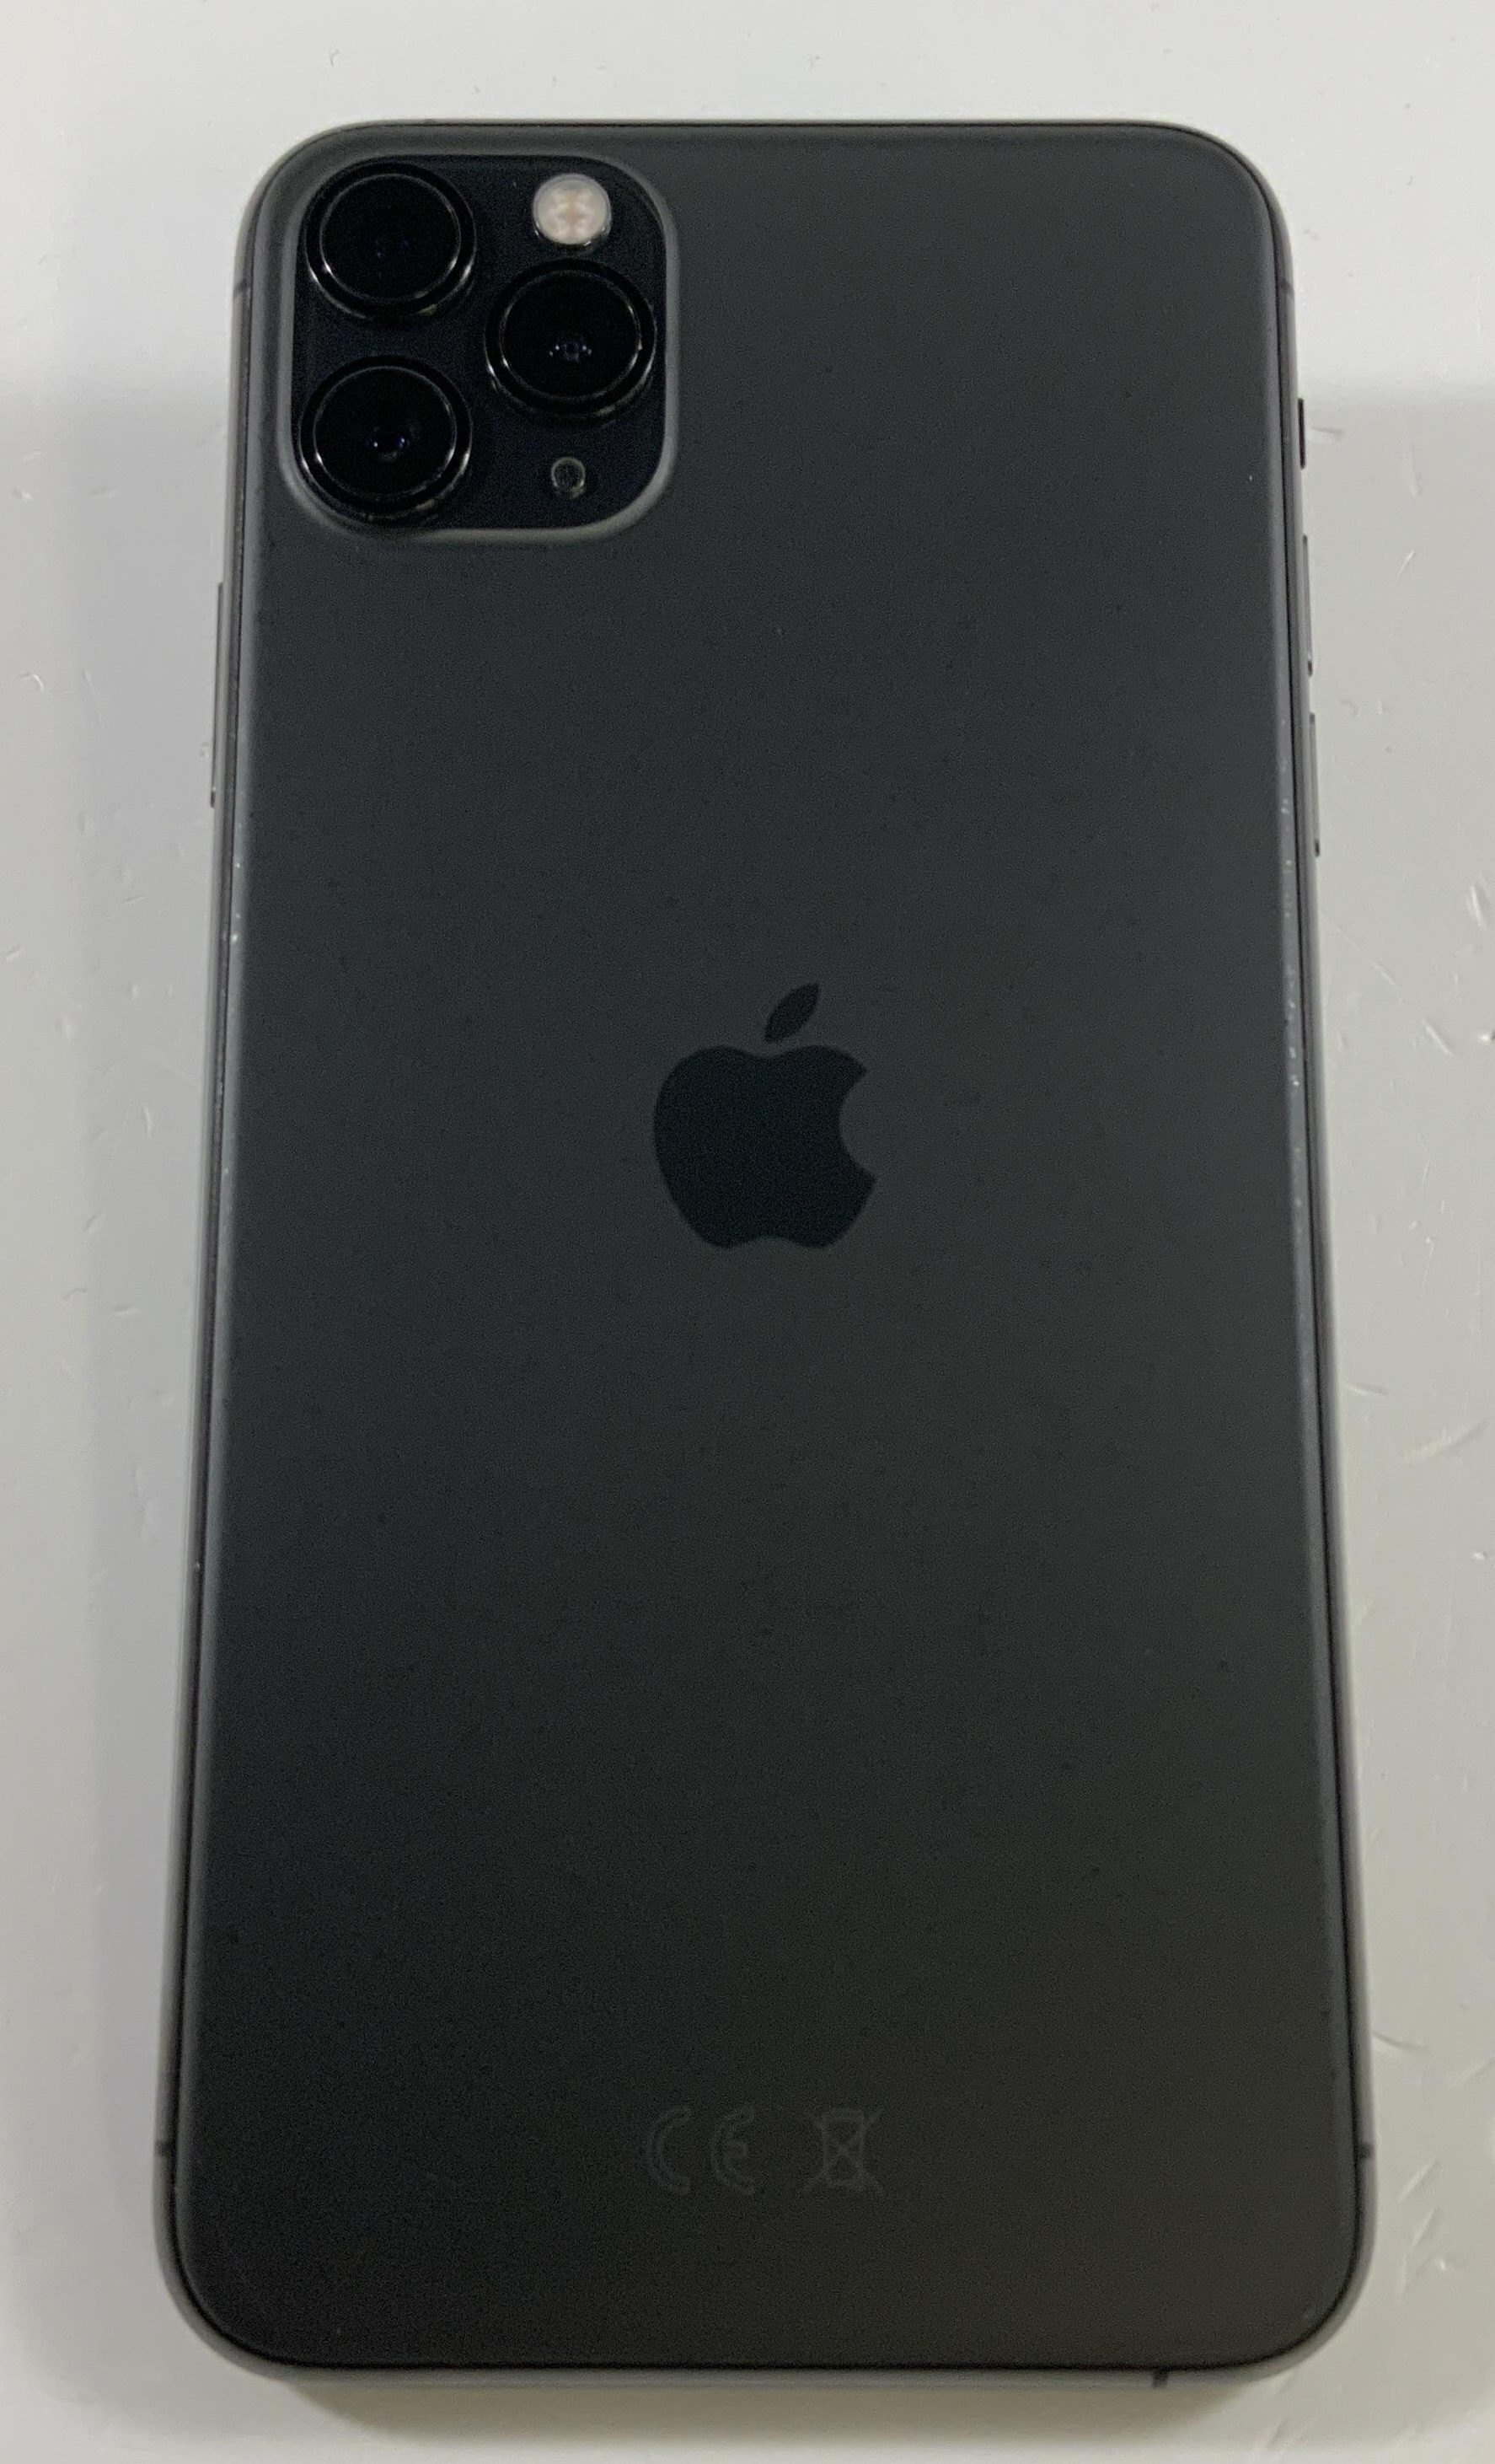 iPhone 11 Pro Max 64GB, 64GB, Space Gray, Bild 2